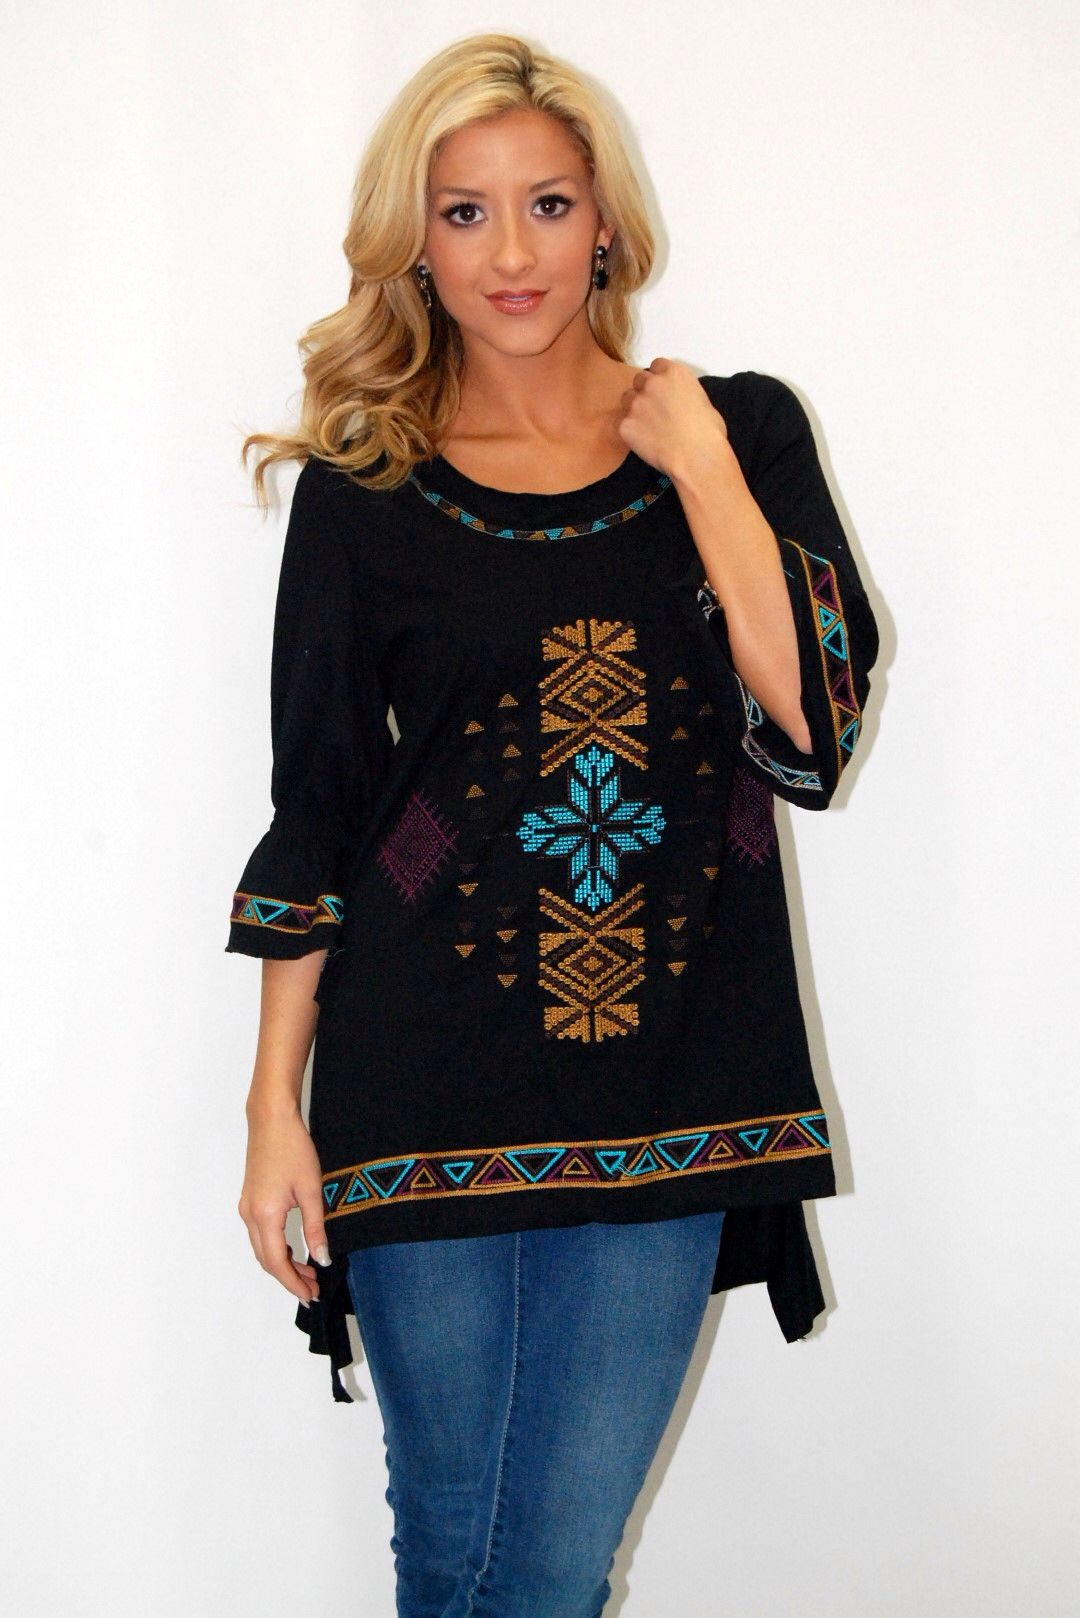 f52ccfae4 New Urban Mango blouse ....look at the embroidery details of this ...